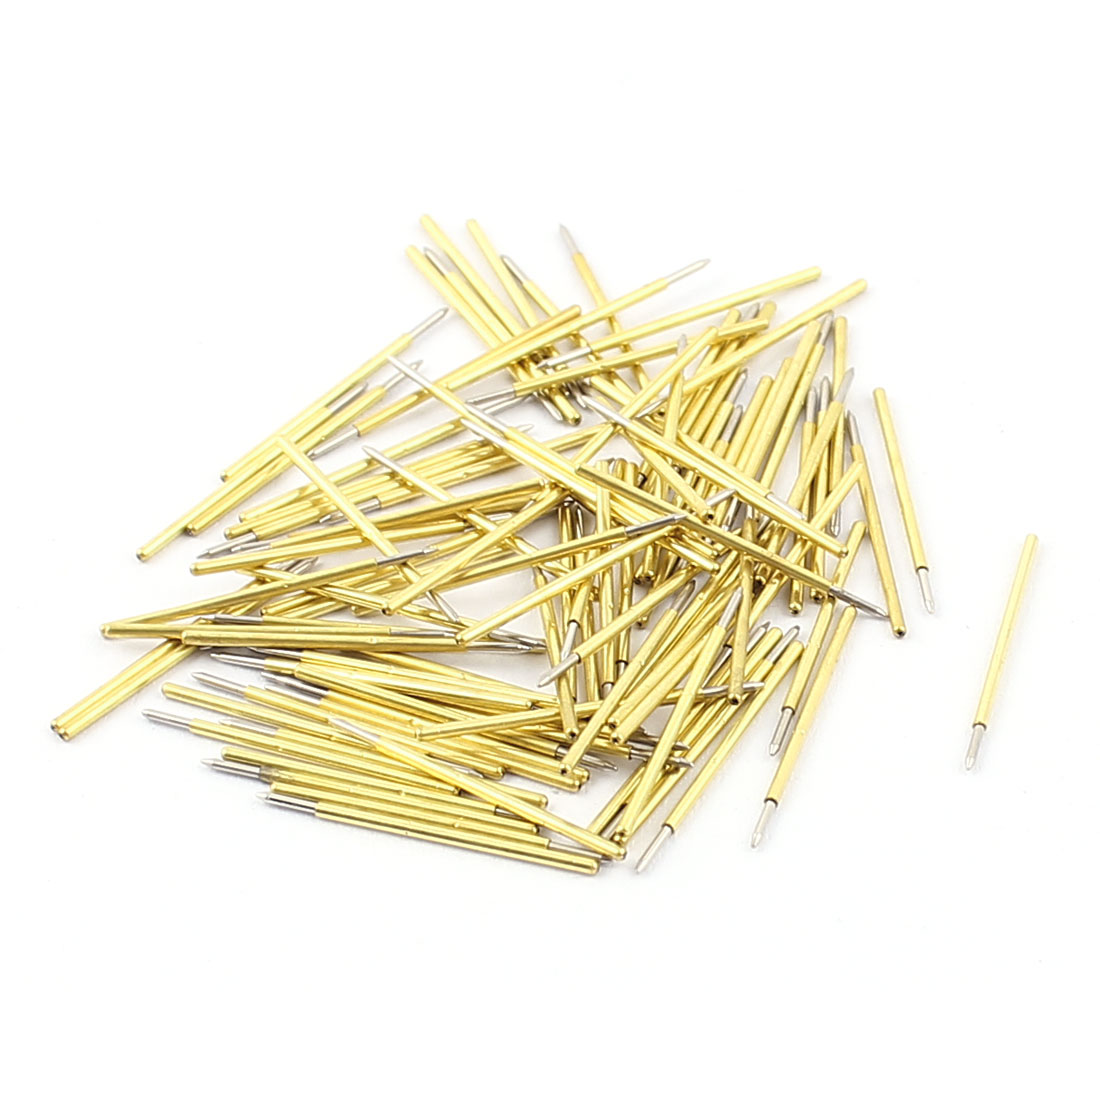 100Pcs P50B 0.5mm Dia Spear Tip PCB Borad Spring Test Probes Testing Pins Gold Tone 16mm